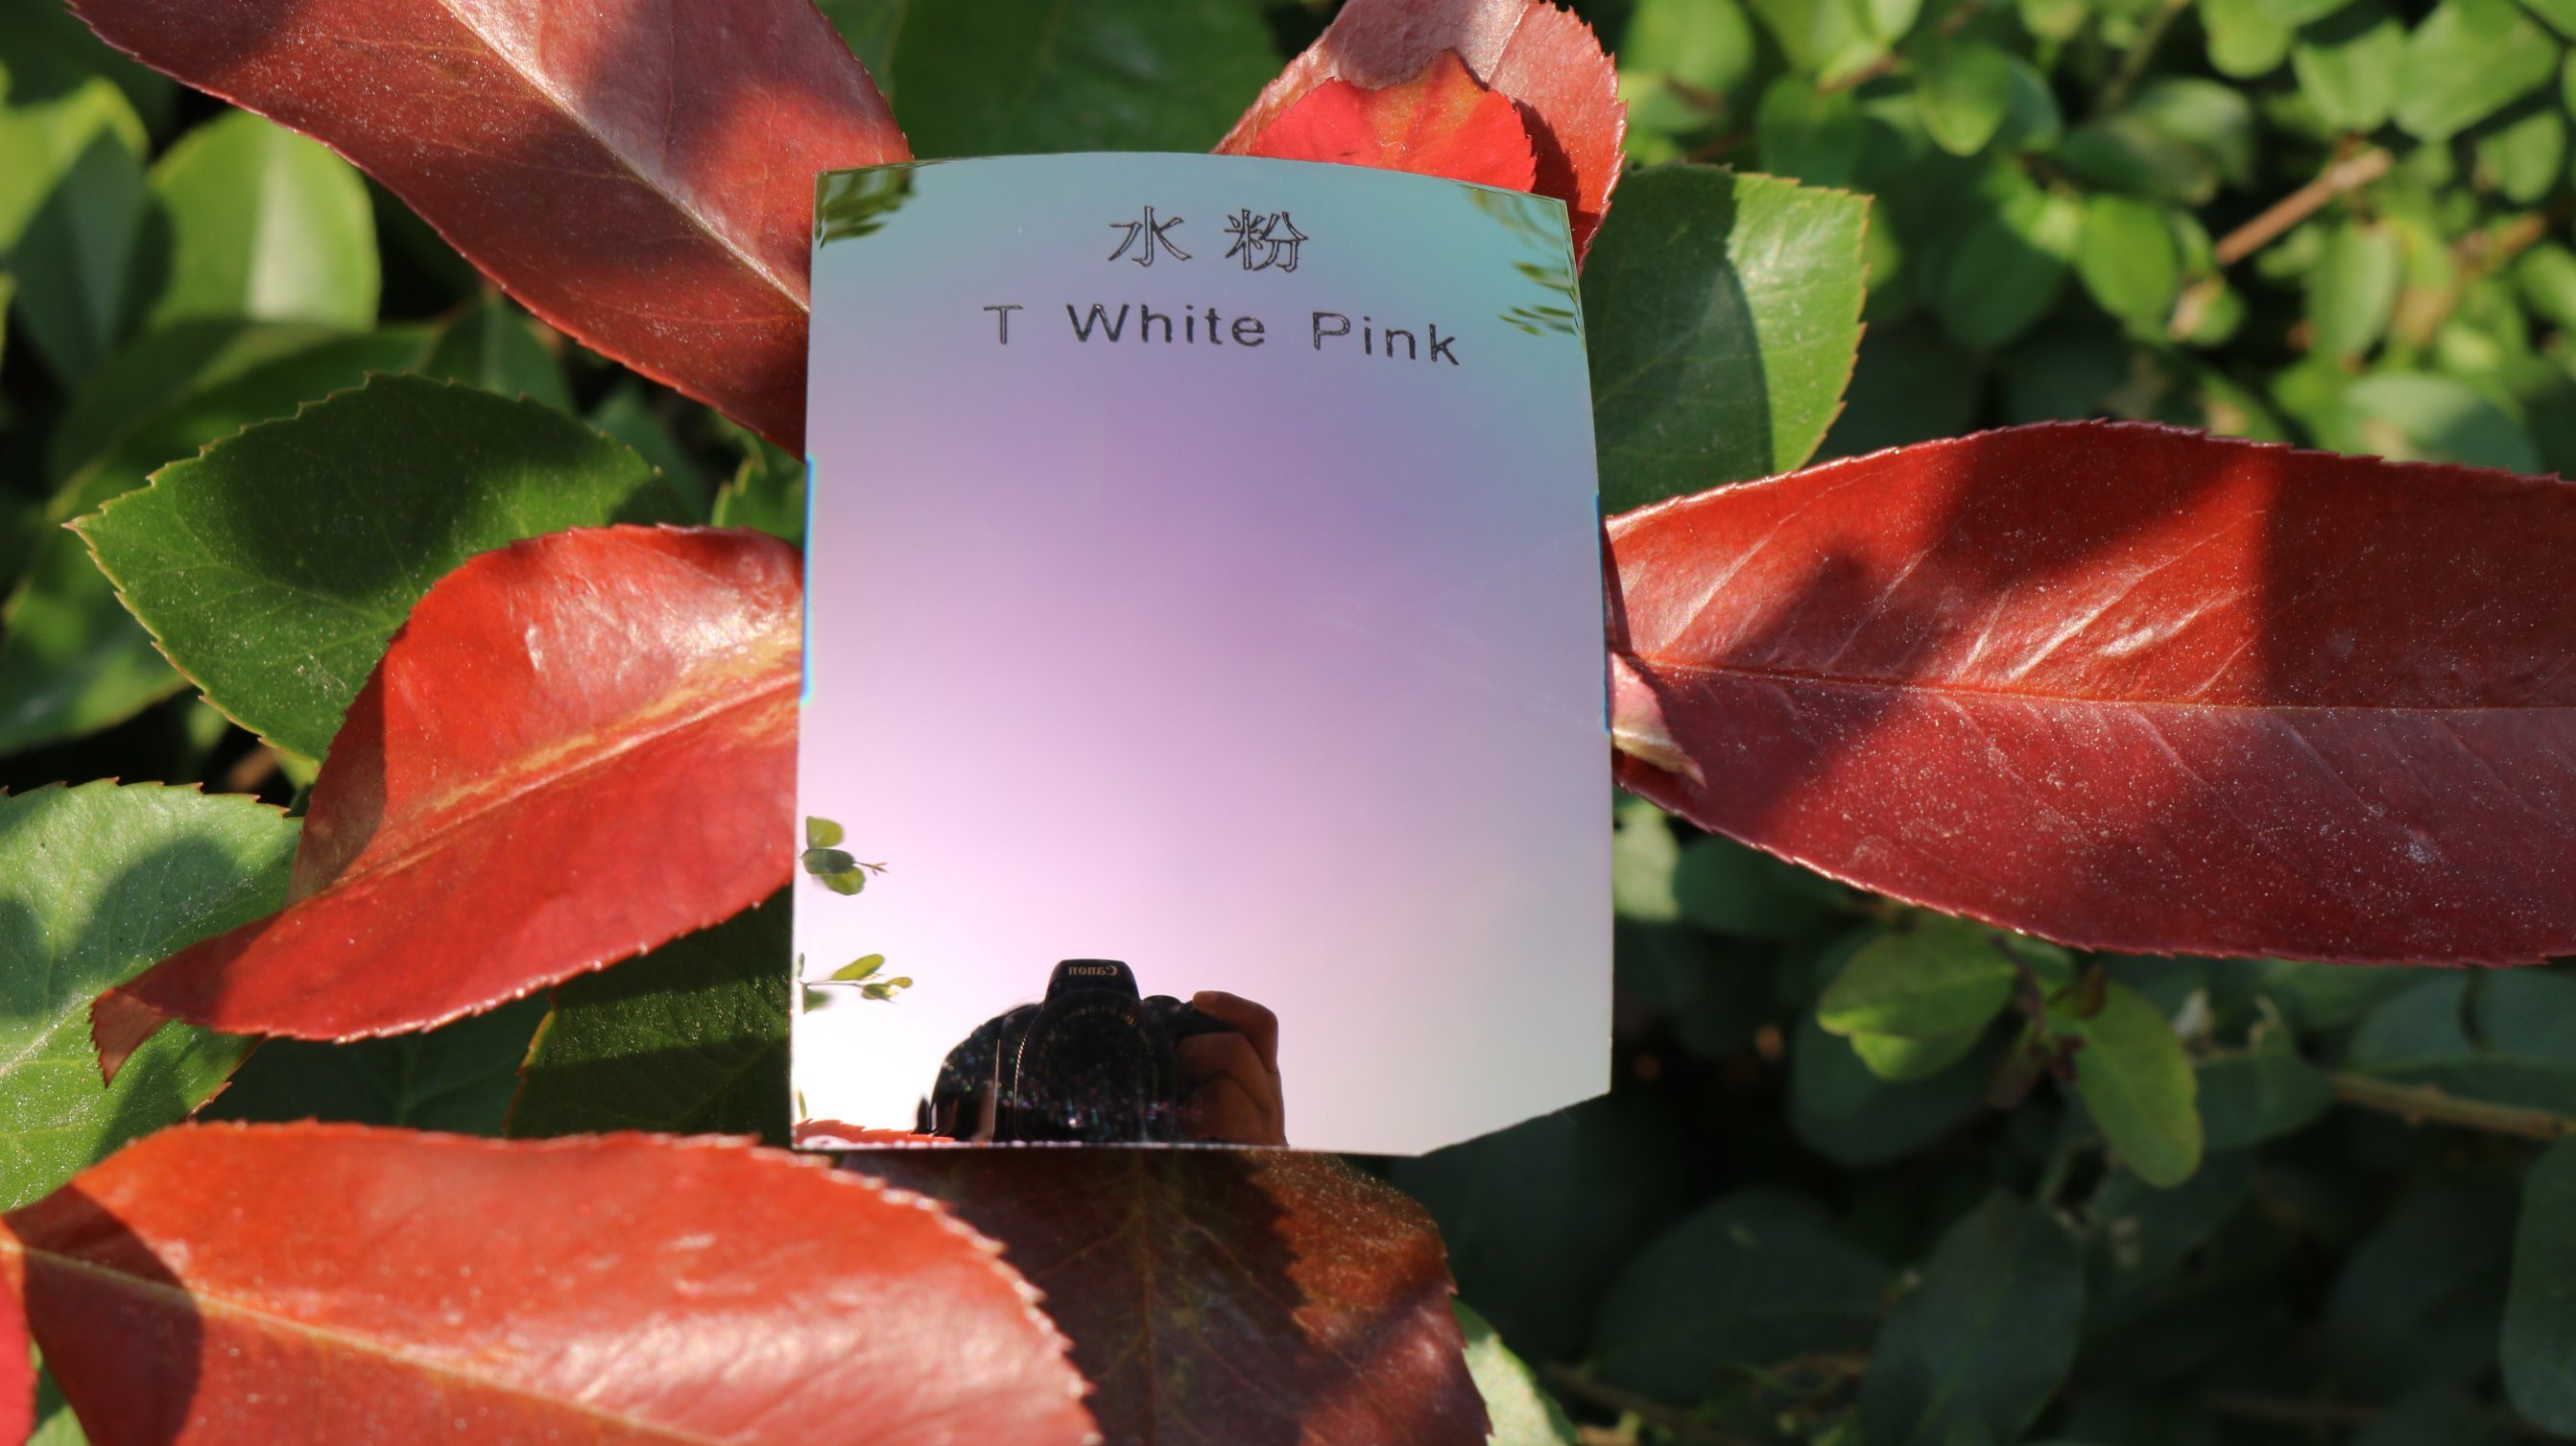 Colorful Eyeglasses Polarized Tac Lens (T White Pink)